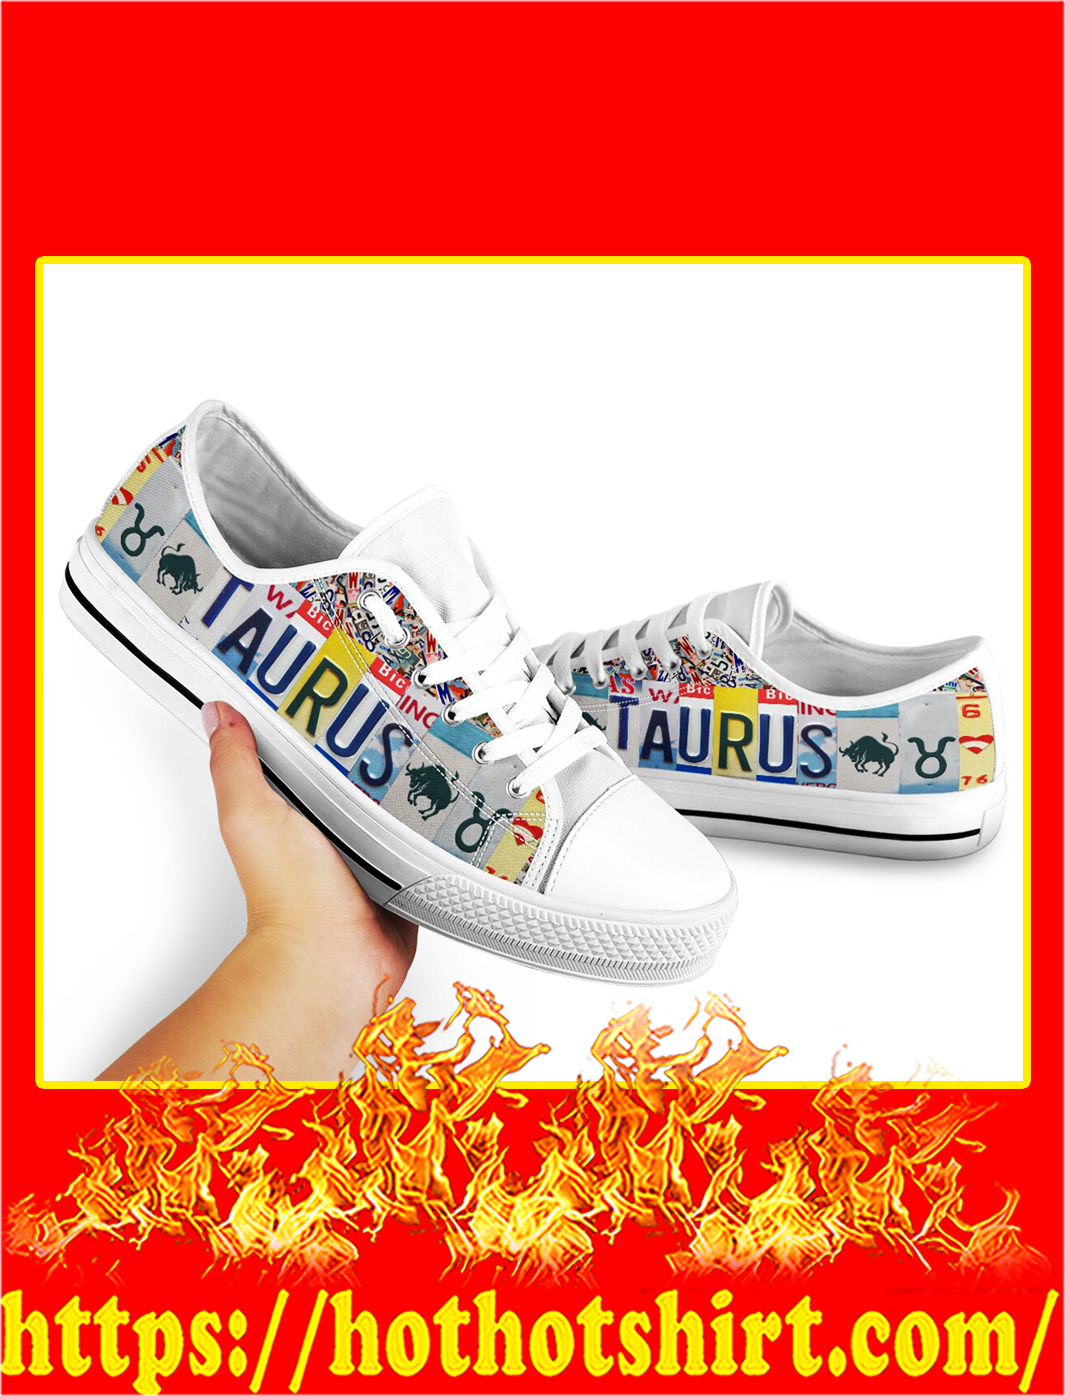 Taurus license plates low top shoes- pic 2